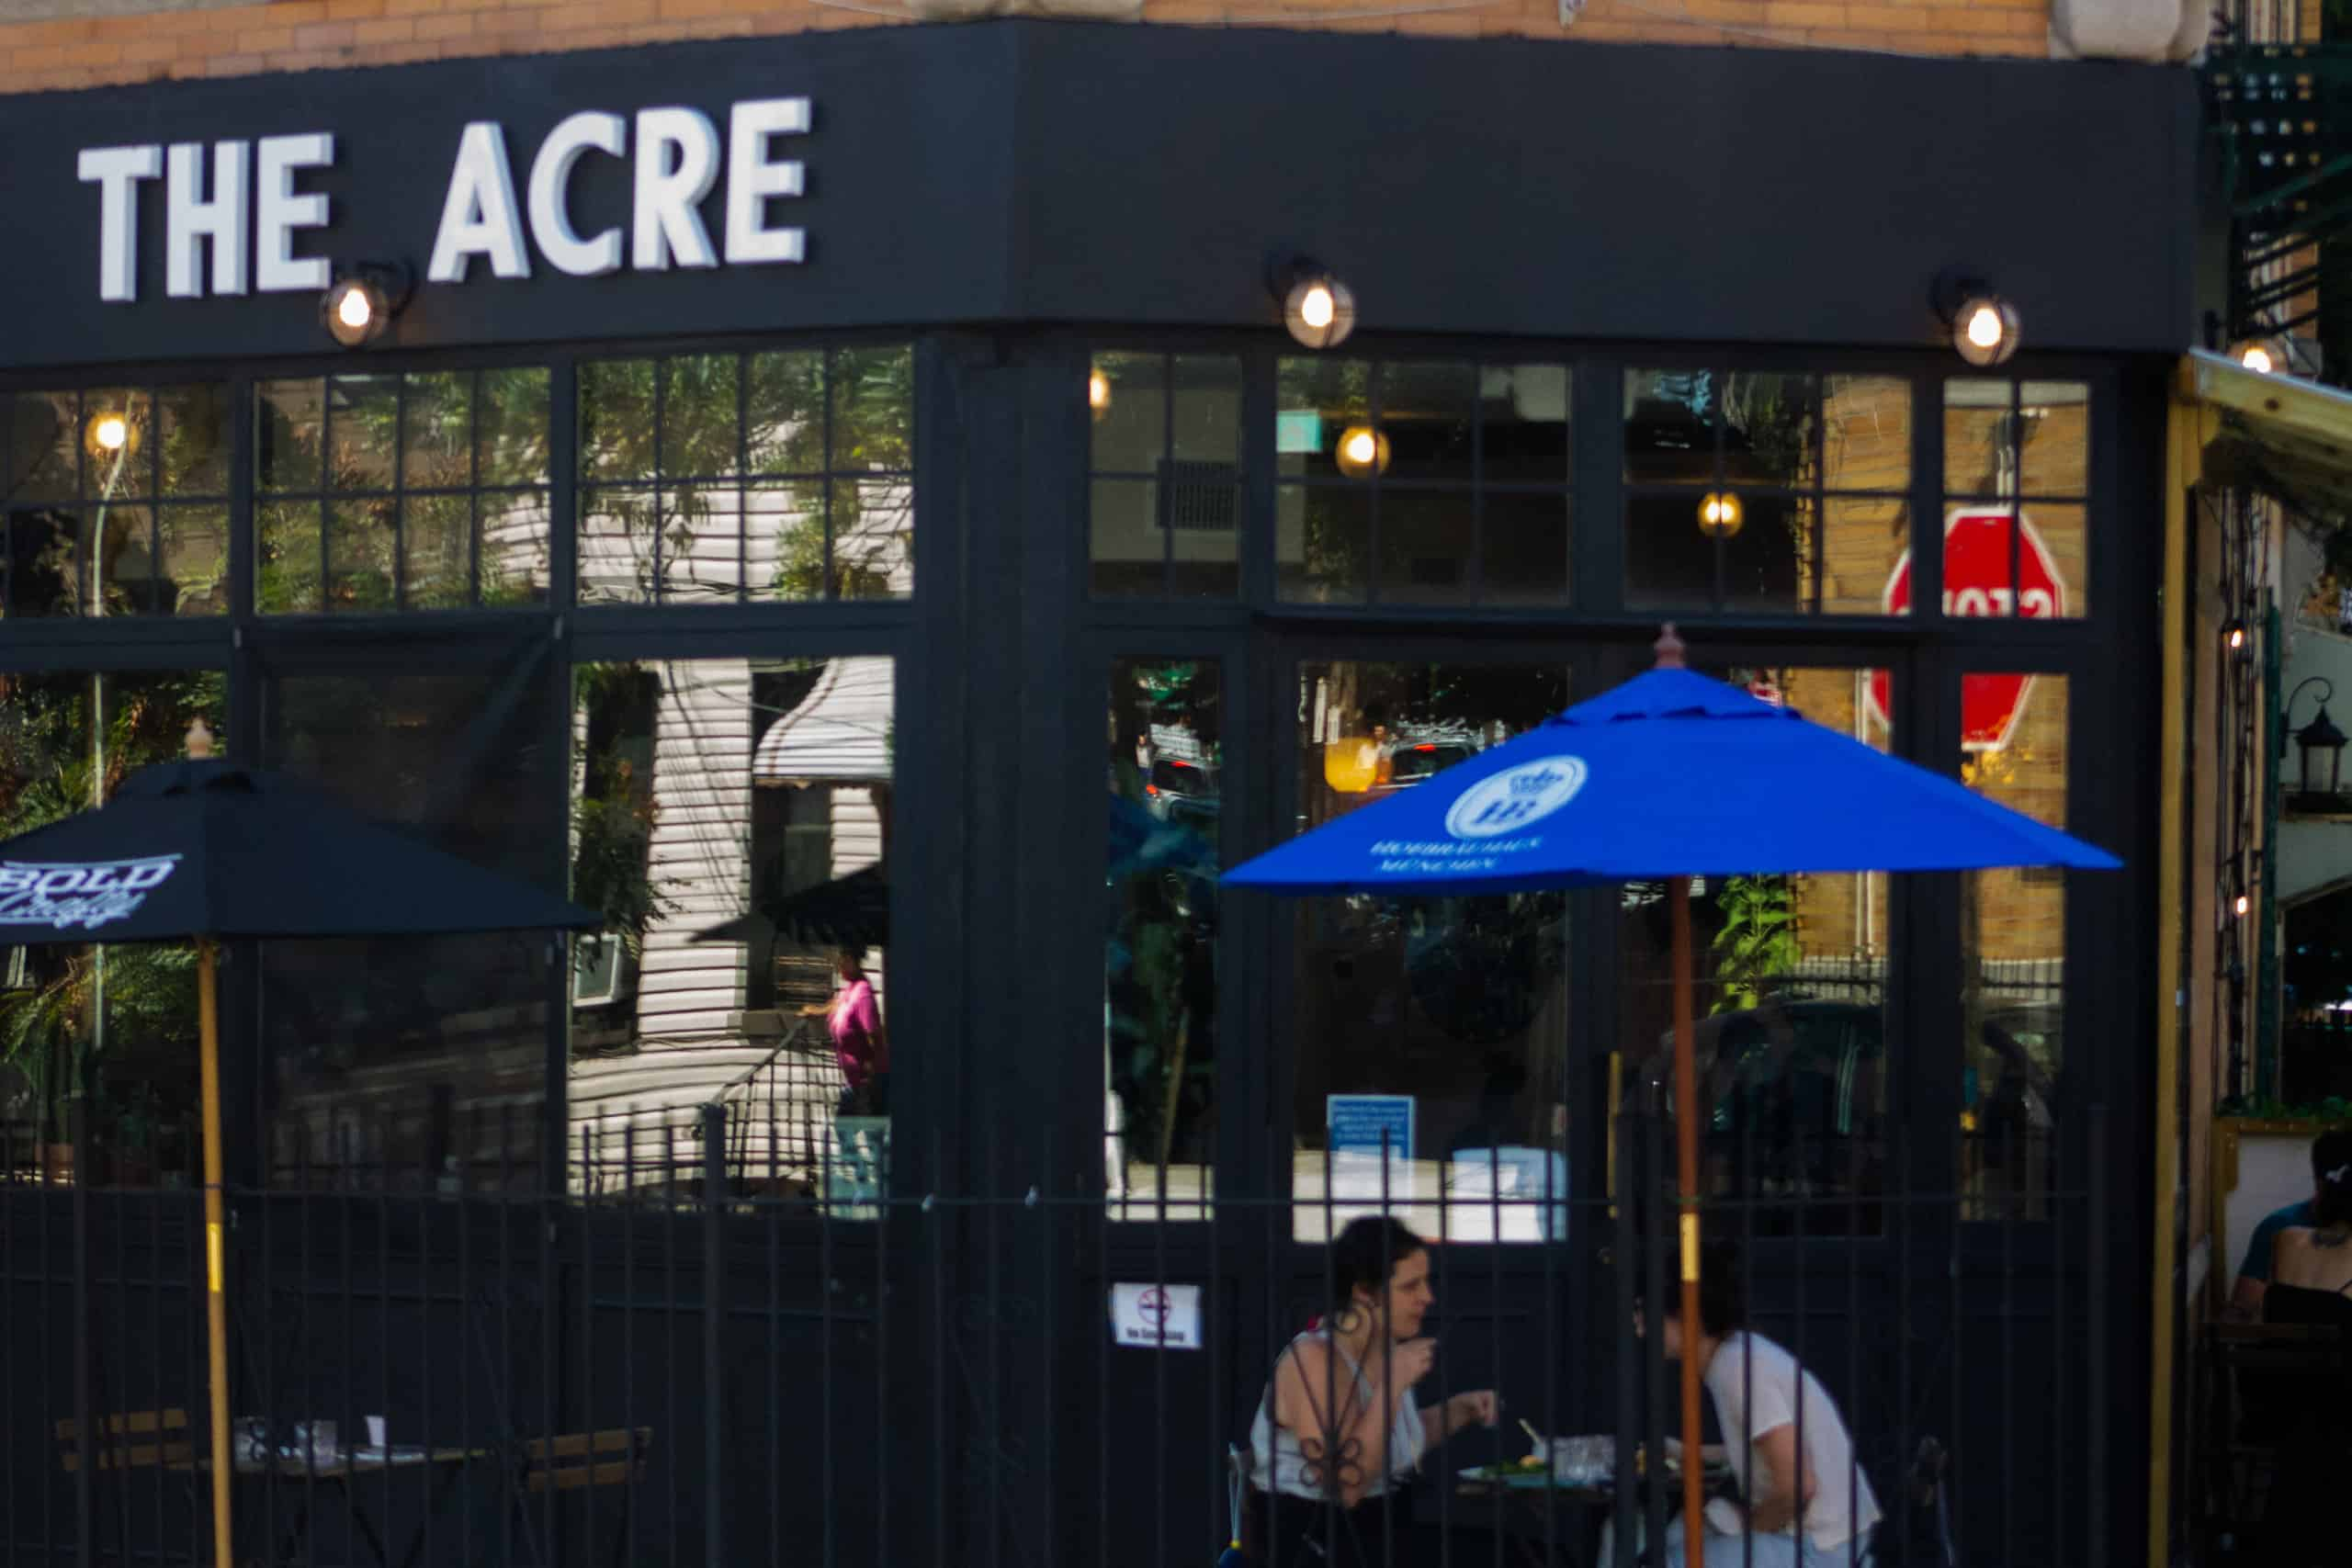 The Acre: Brunch, With a Twist